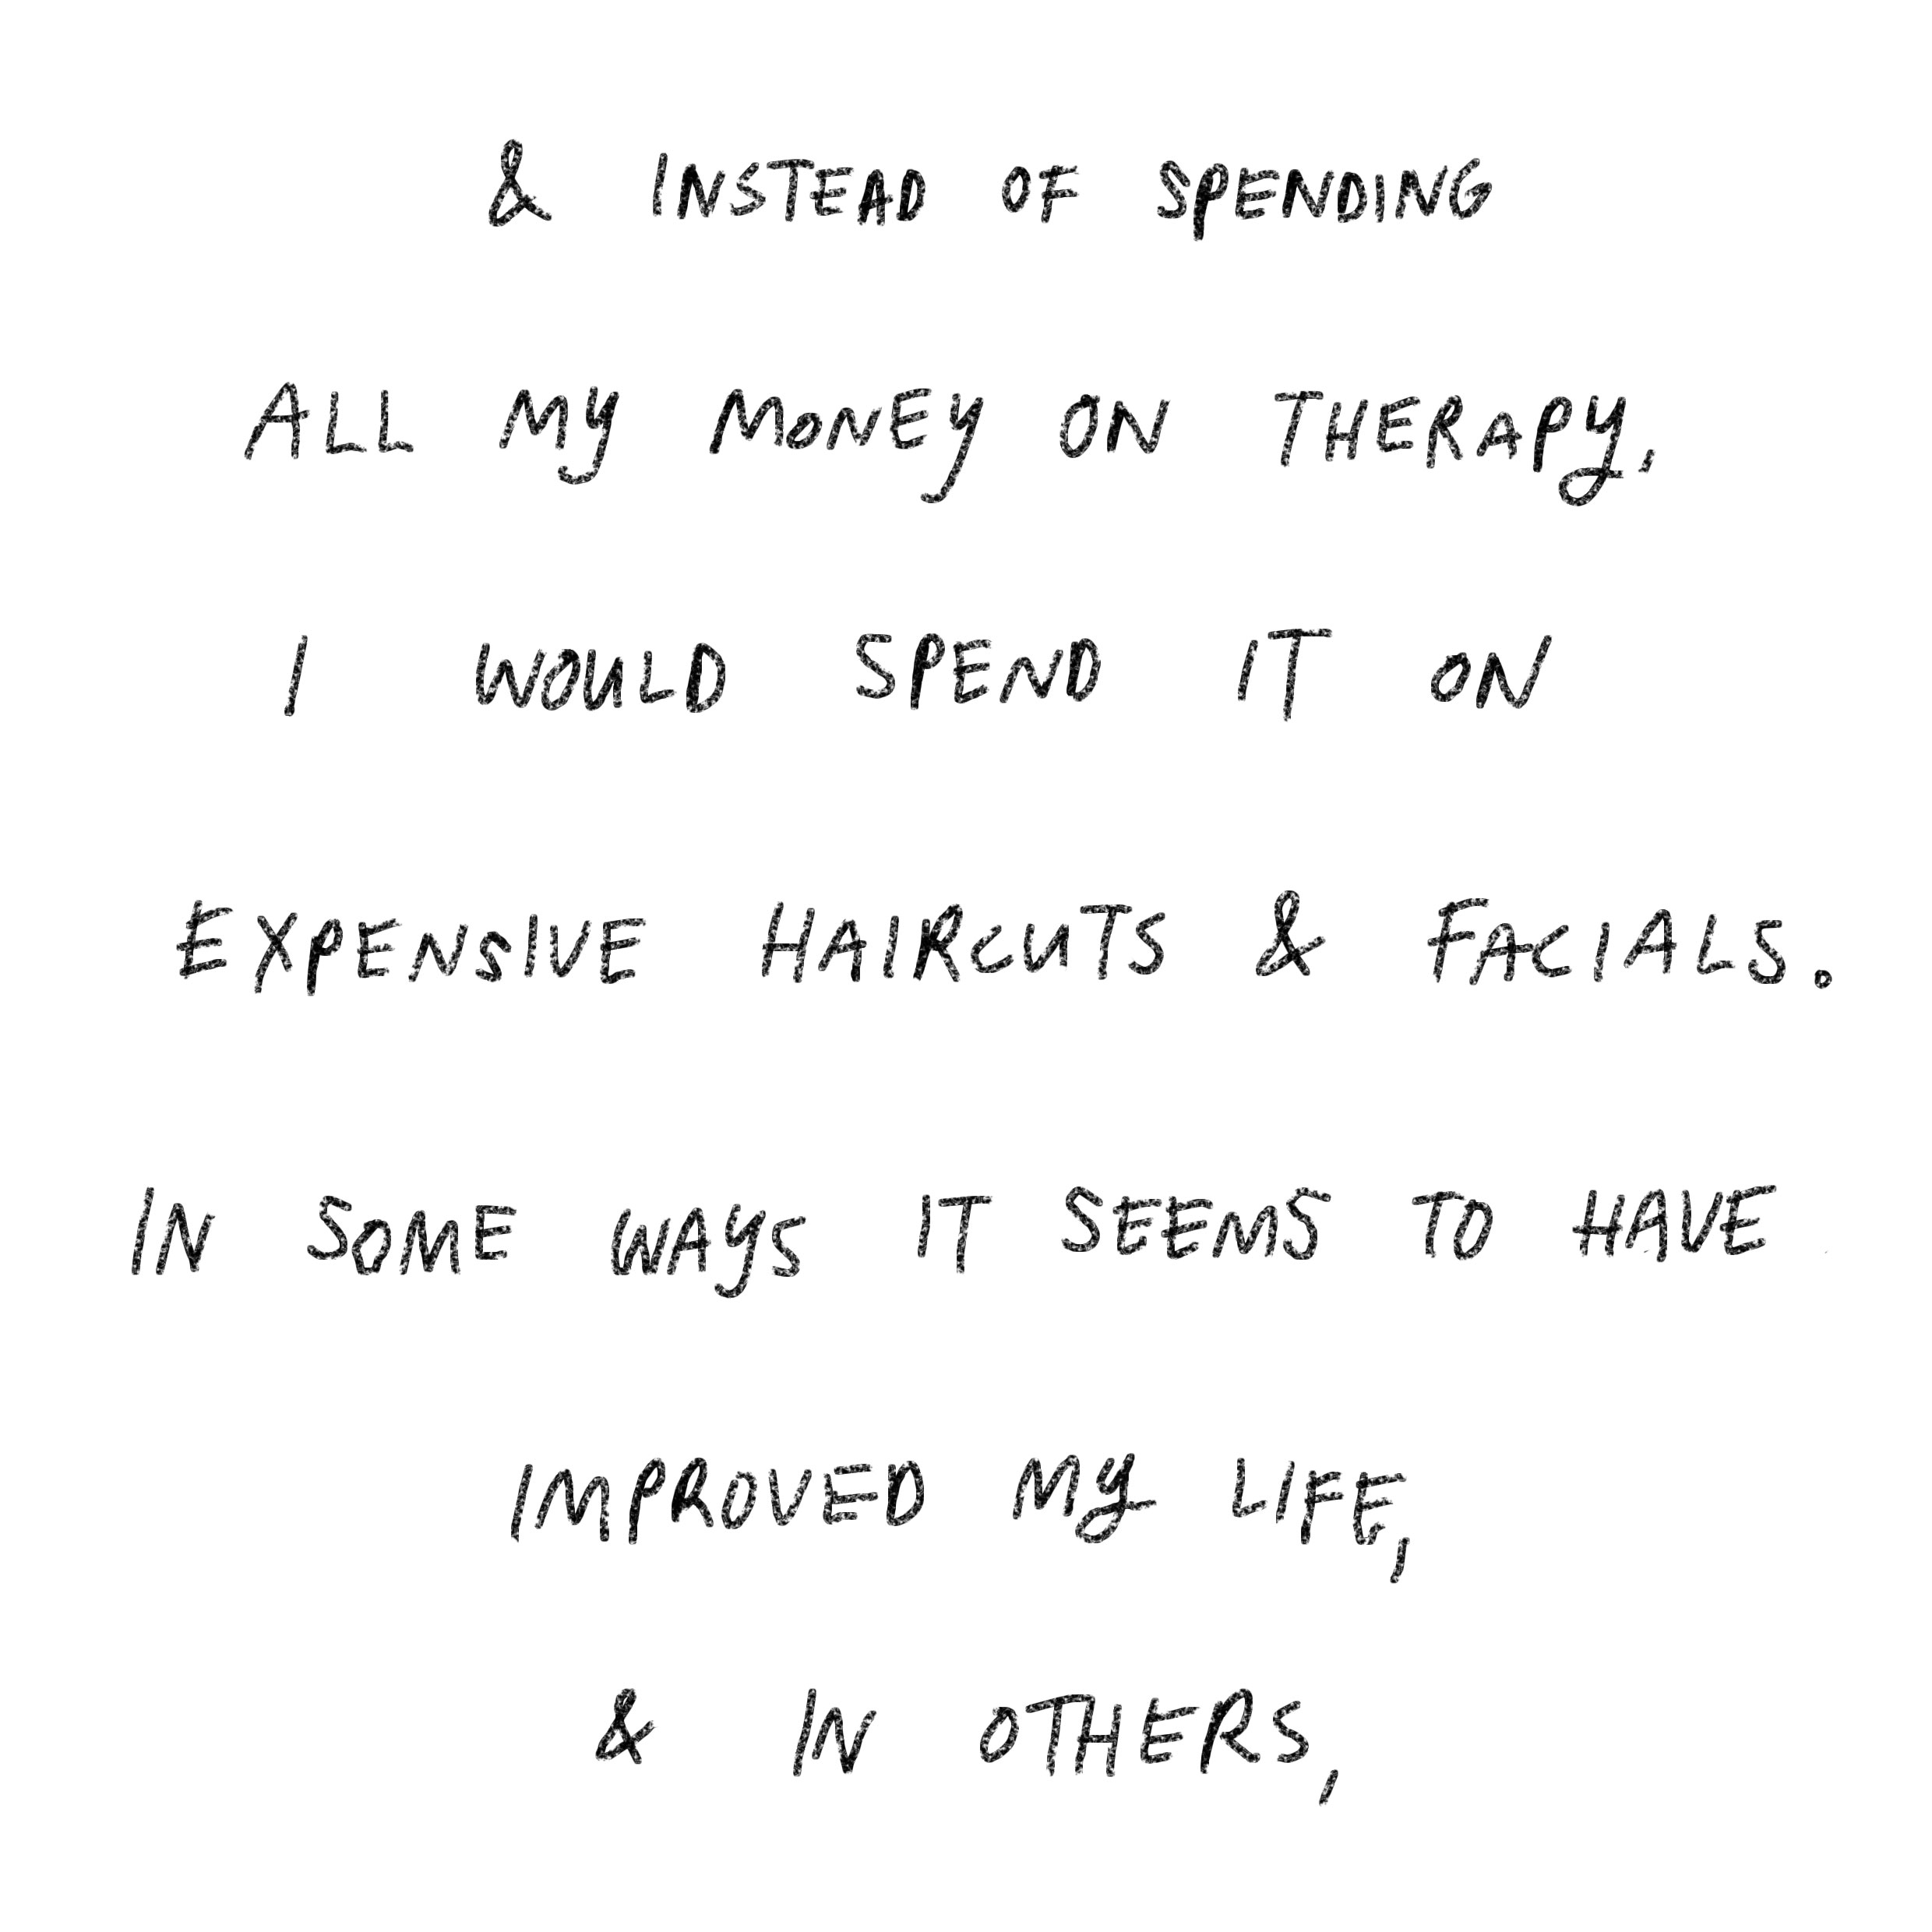 'and instead of spending all my money on therapy, I would spent it on expensive haircuts and facials. In some ways it seems to have improved my life, and in others,'